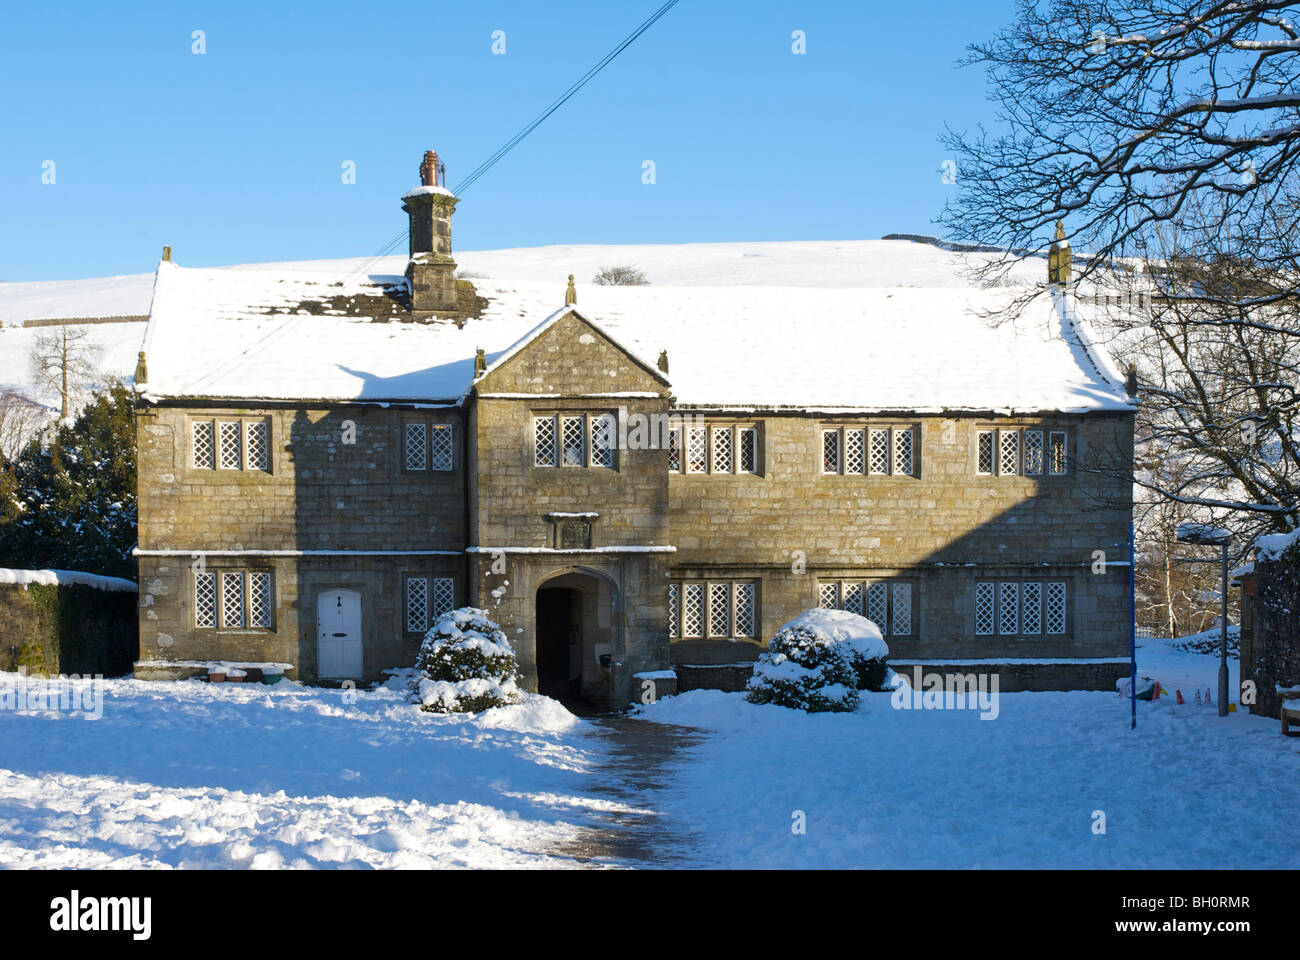 The old Grammar School in the village of Burnsall, Wharfedale, Yorkshire Dales National Park, England UK - Stock Image